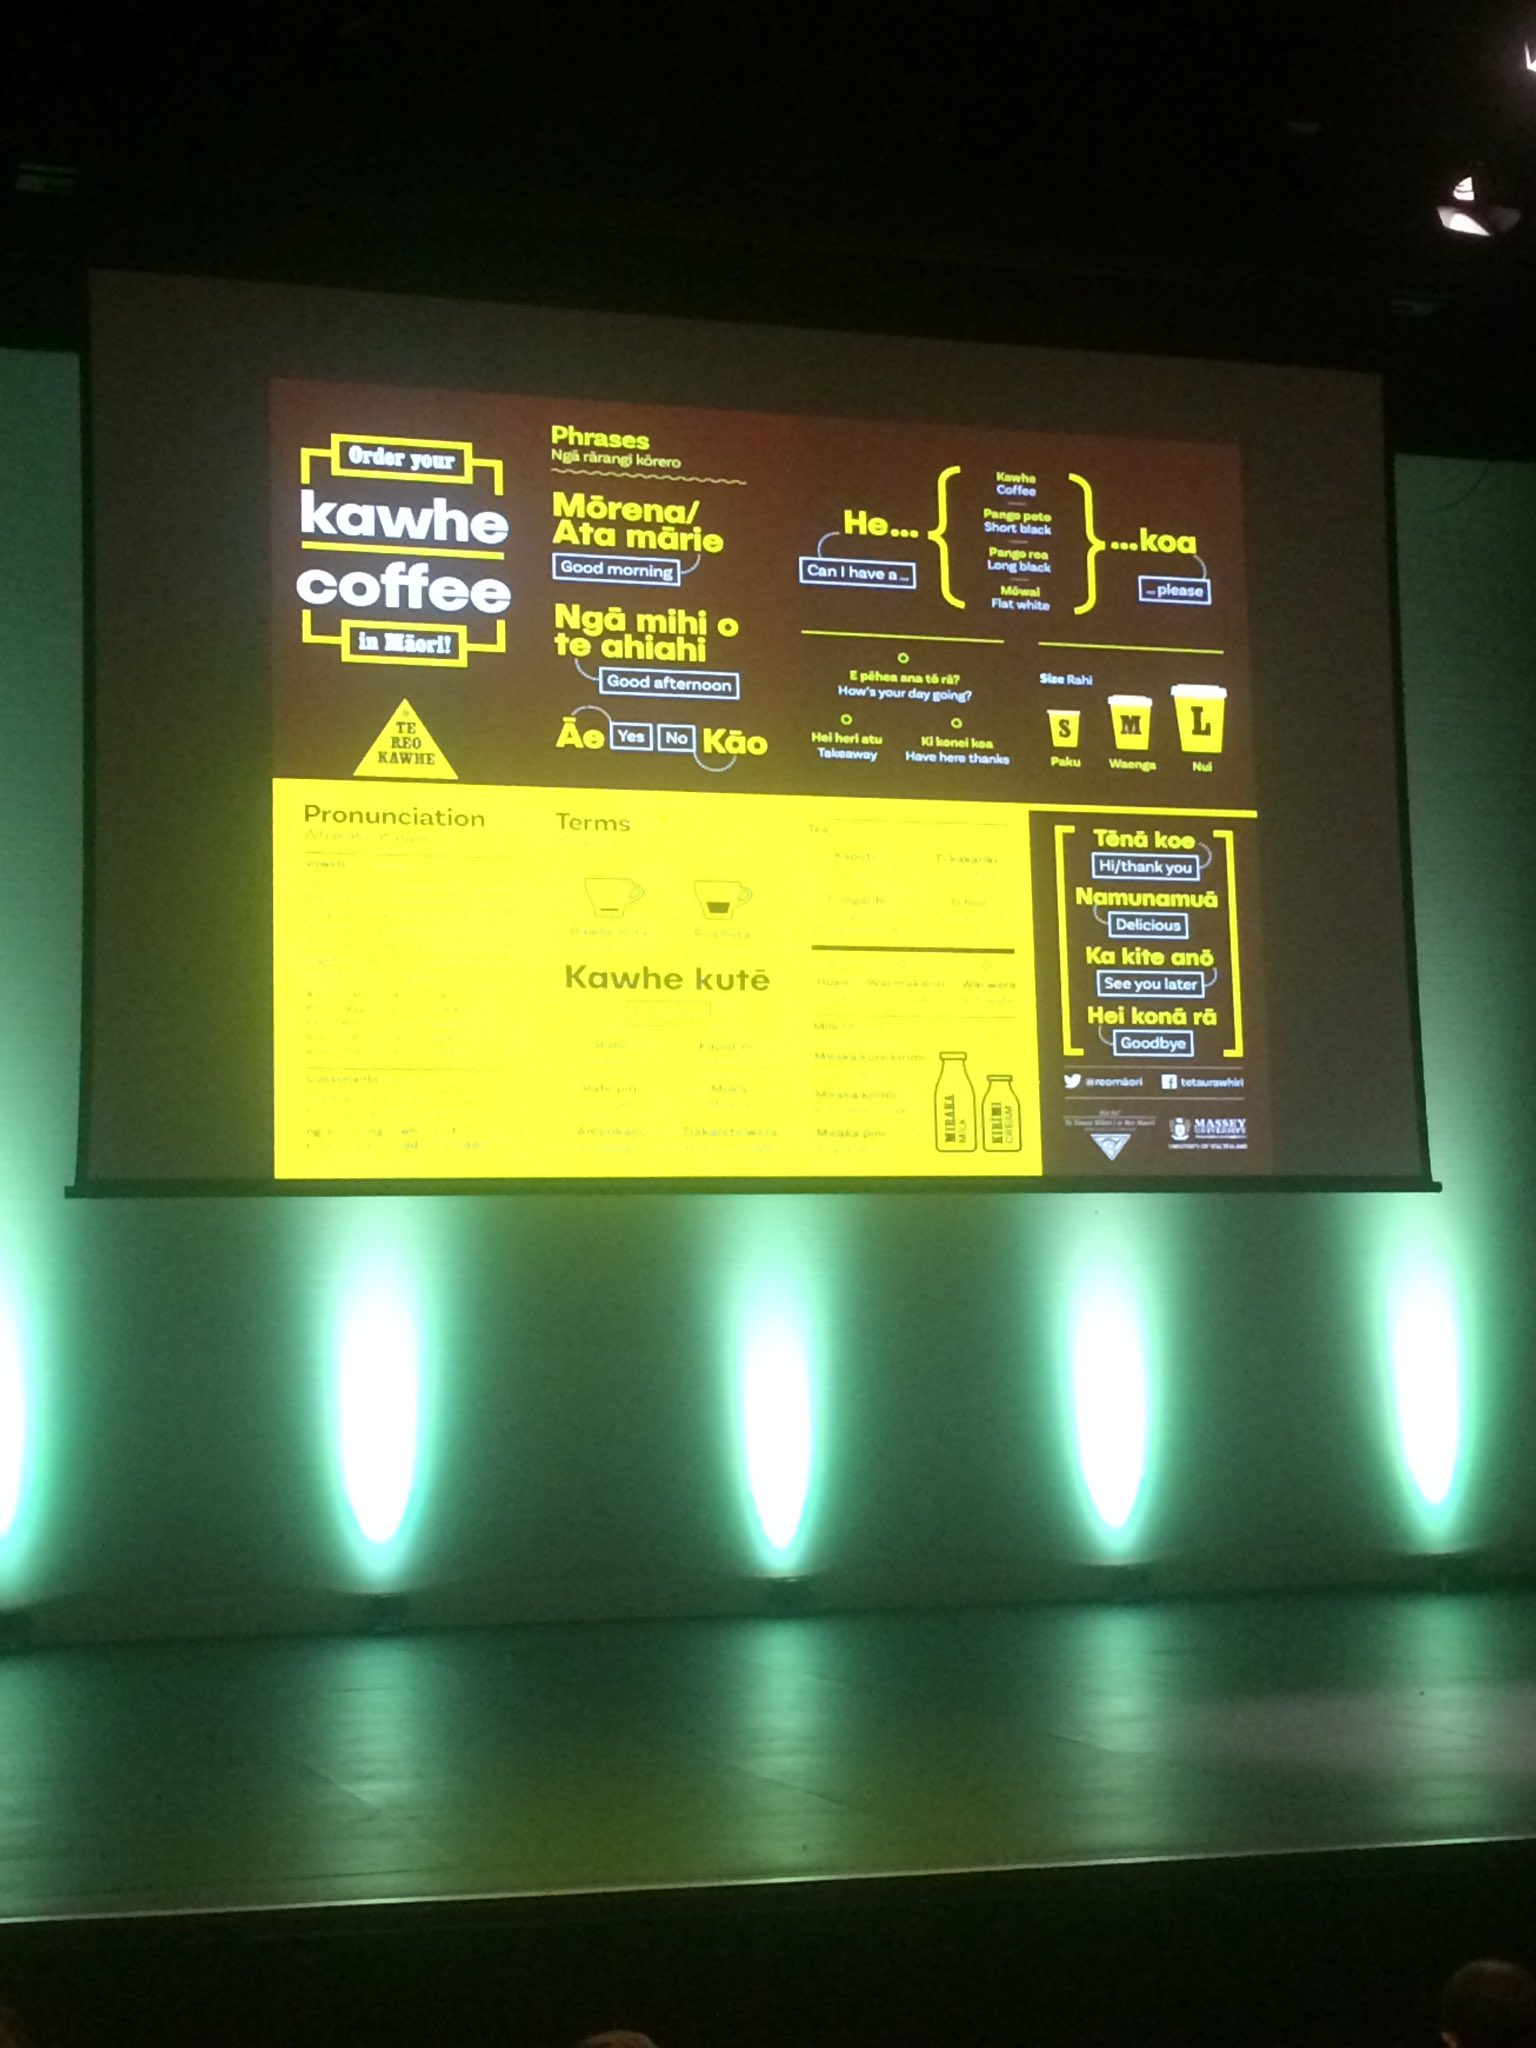 Awesome work @reomaori #NDFNZ https://t.co/jgaxwUOAgG